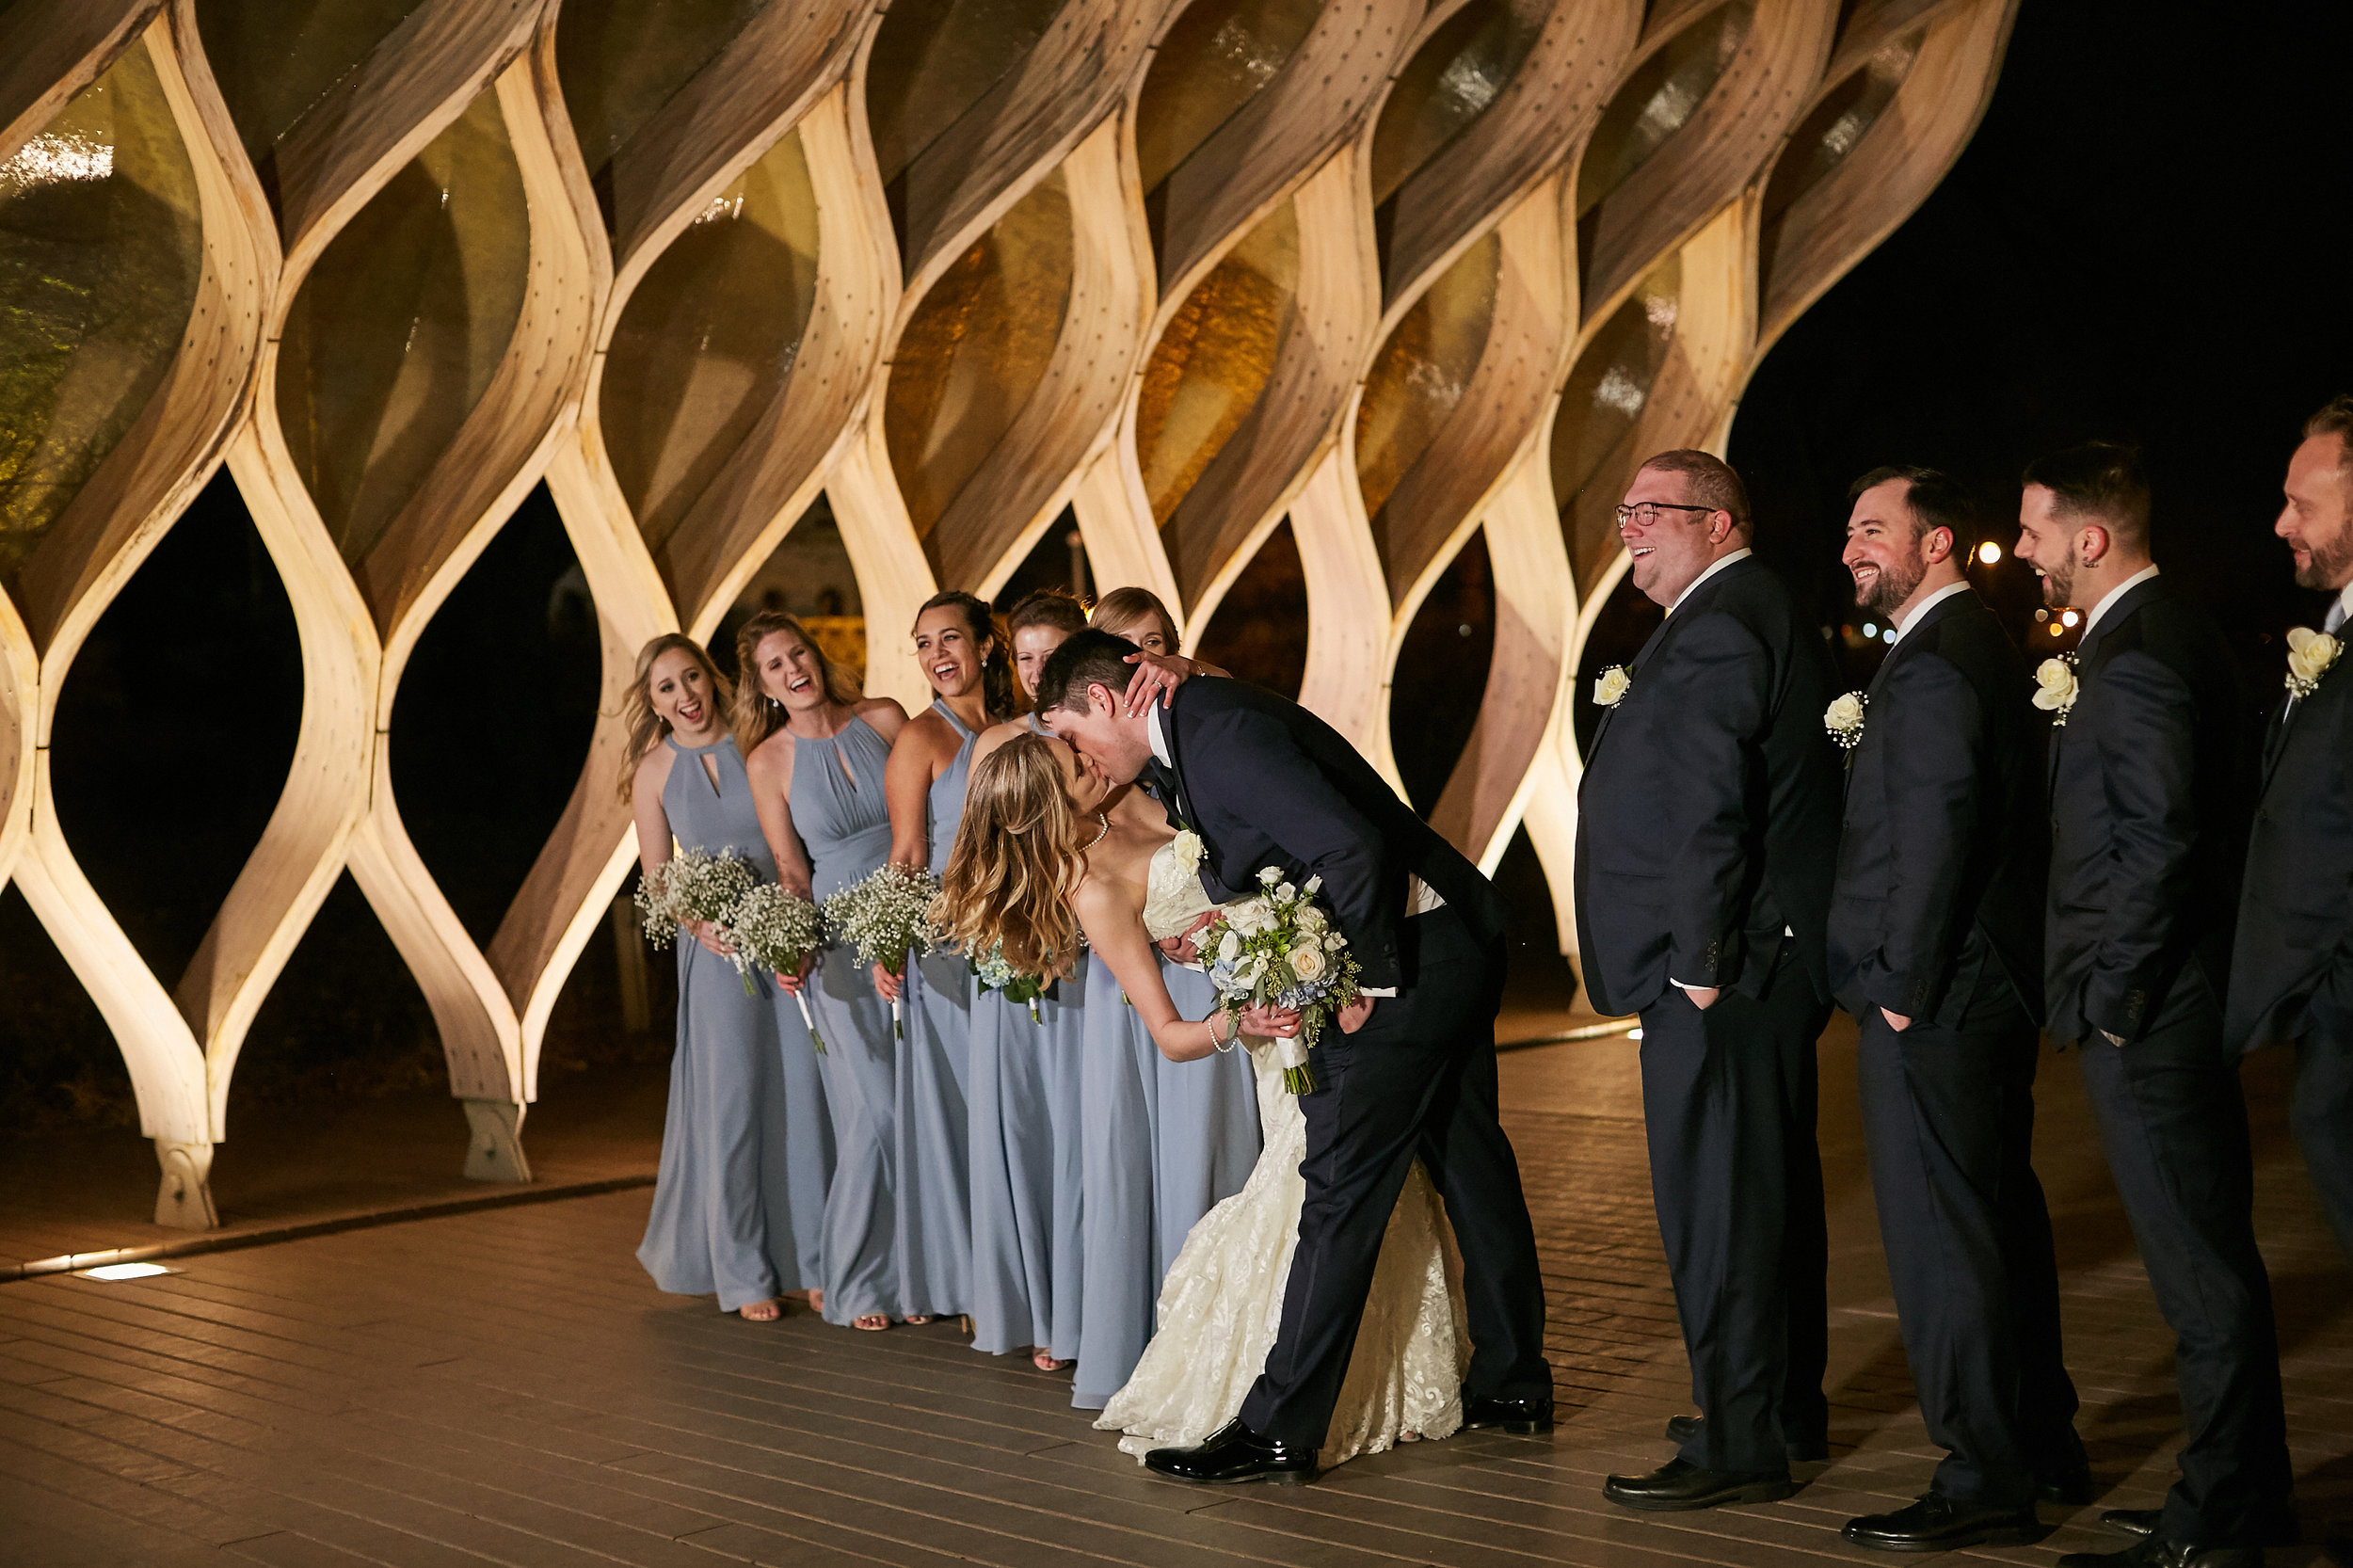 wedding day party photo lincoln park arch swoon dip bride groom